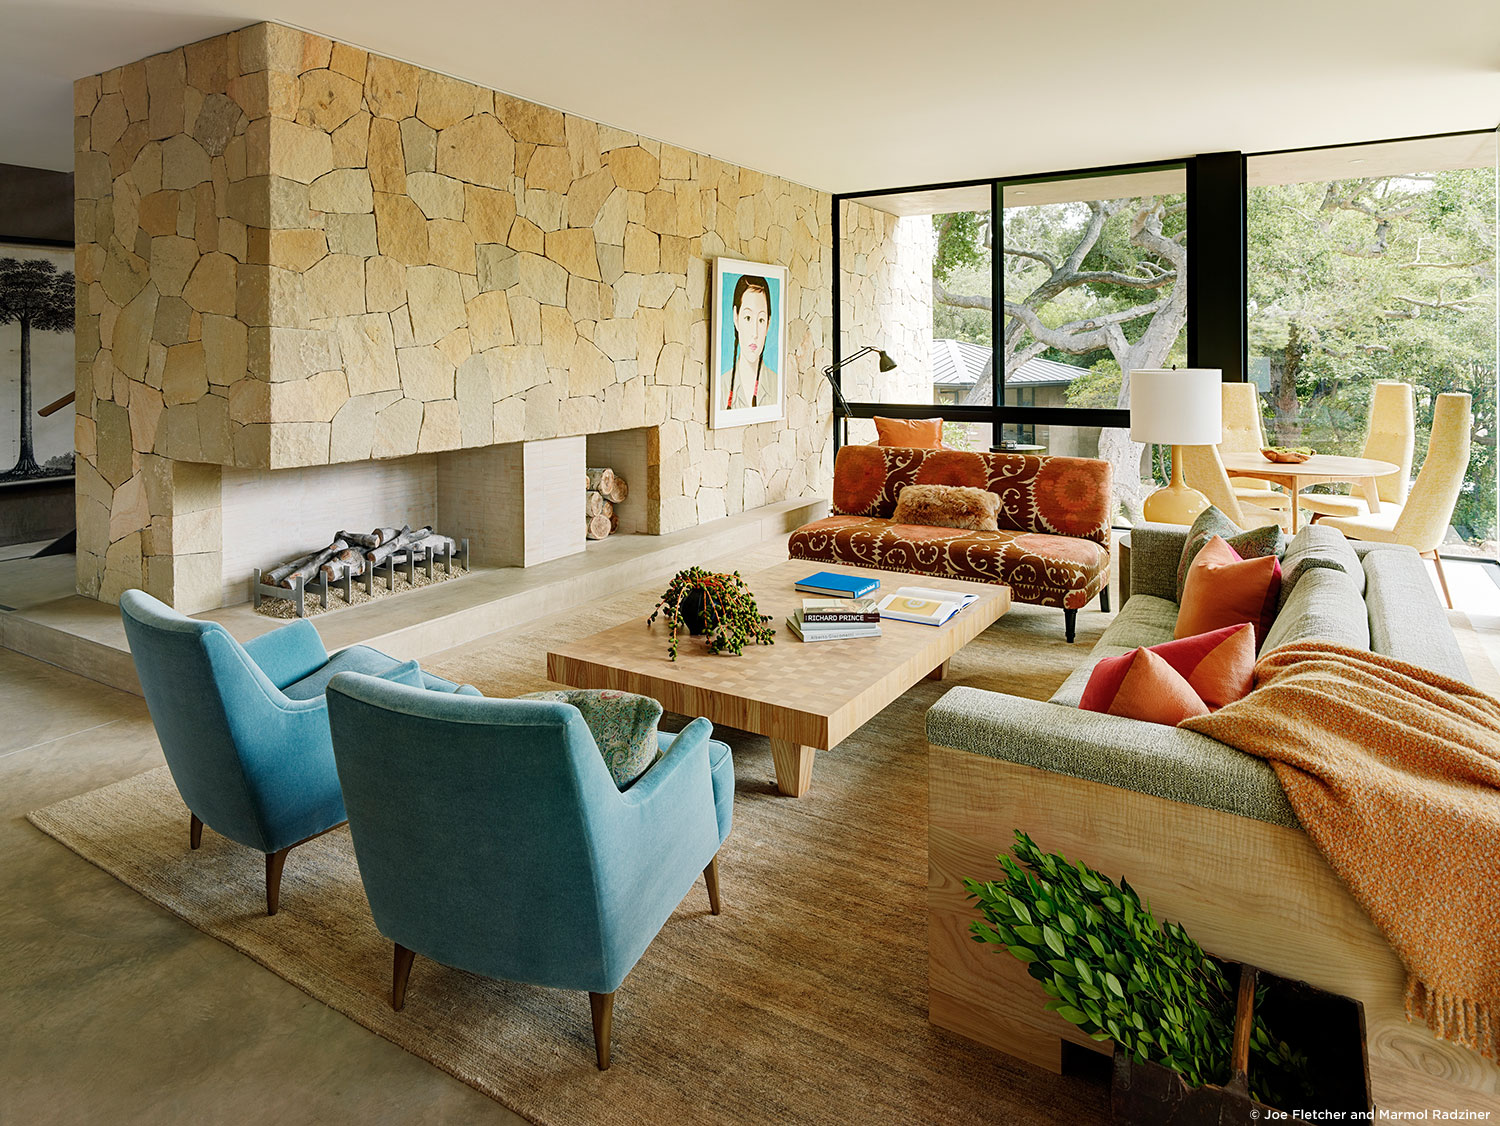 10 Beautiful Living Room Design by Marmol Radziner living room design by marmol radziner 10 Beautiful Living Room Design by Marmol Radziner 10 Beautiful Living Room Design by Marmol Radziner 07